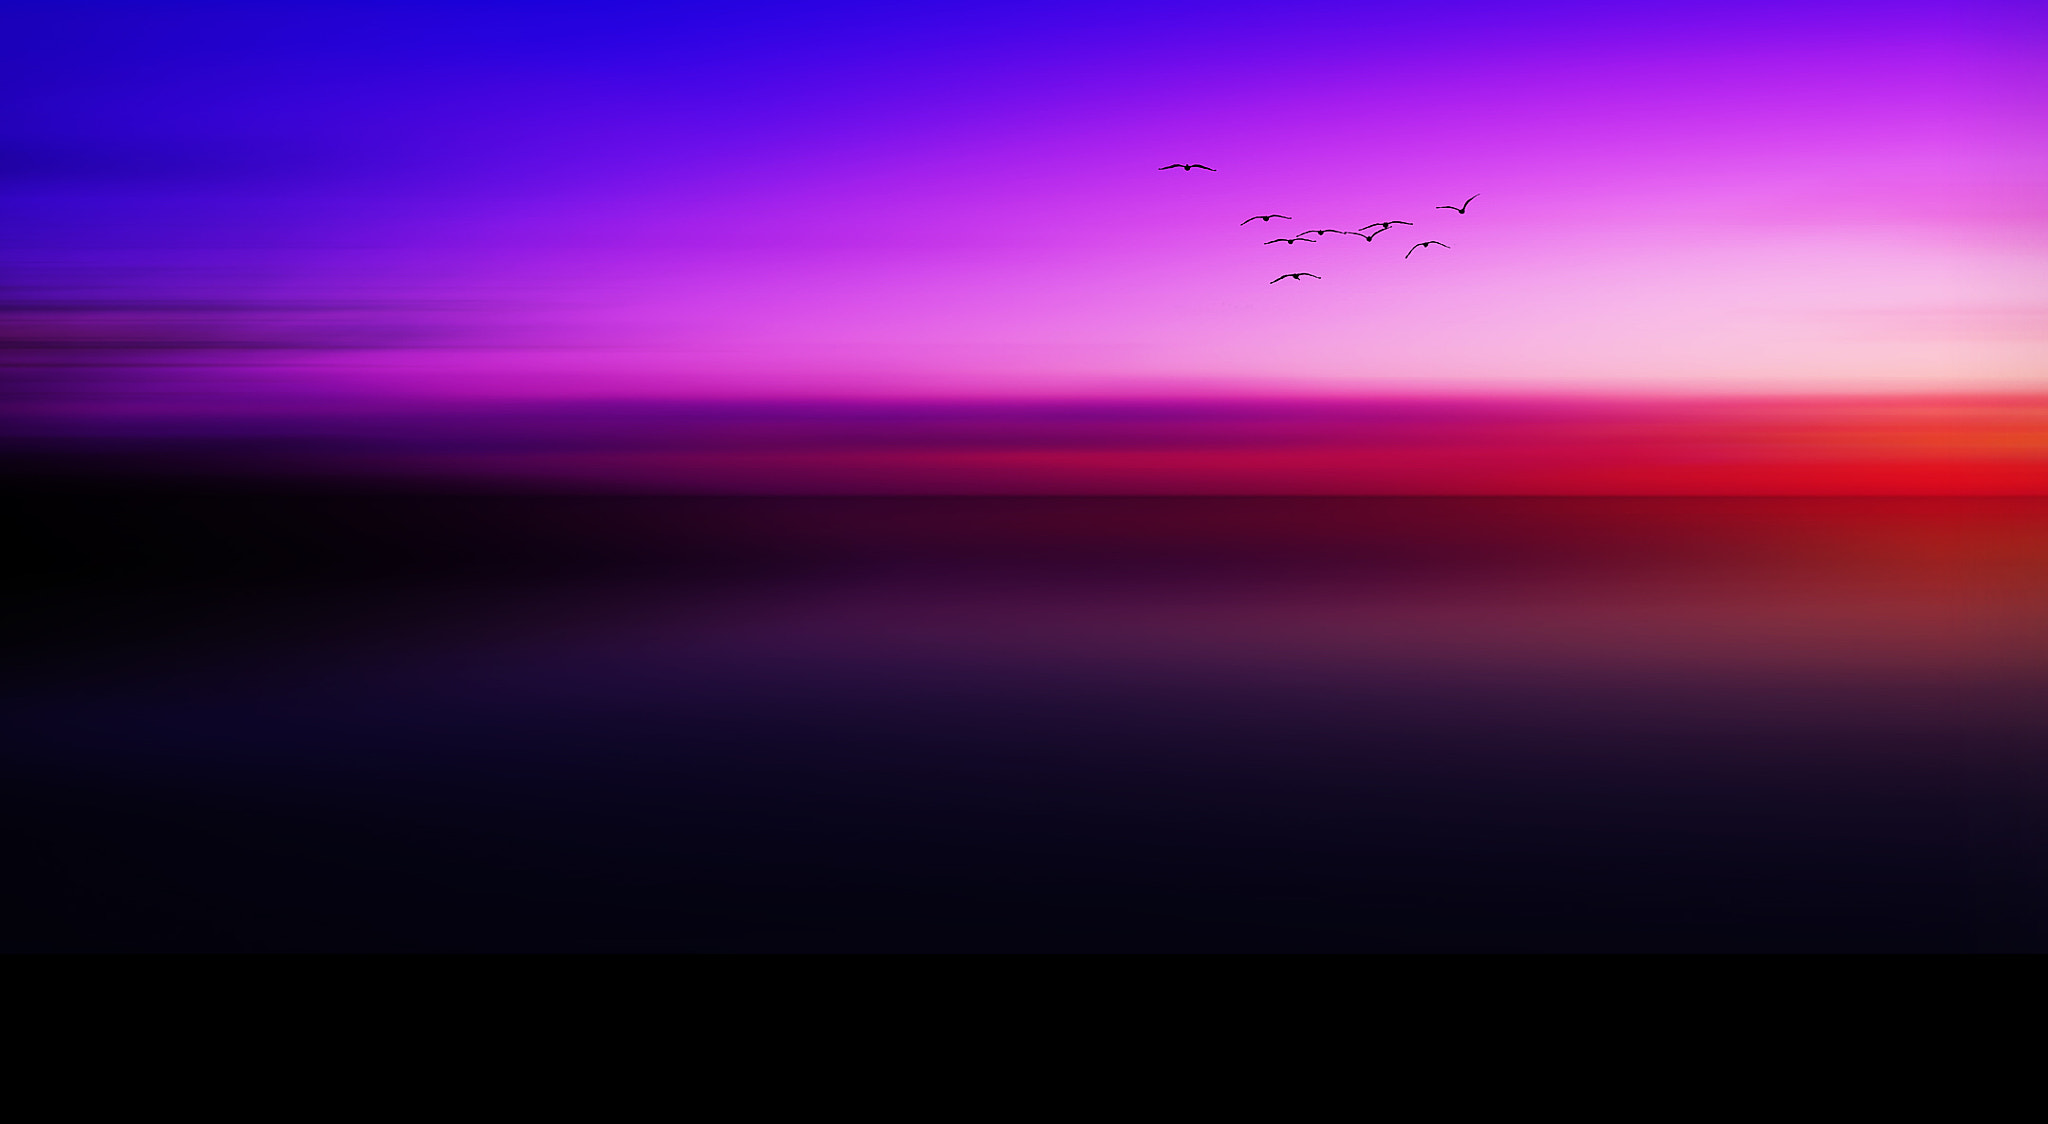 Photograph The Seagulls Melody. by mojaa neddo on 500px